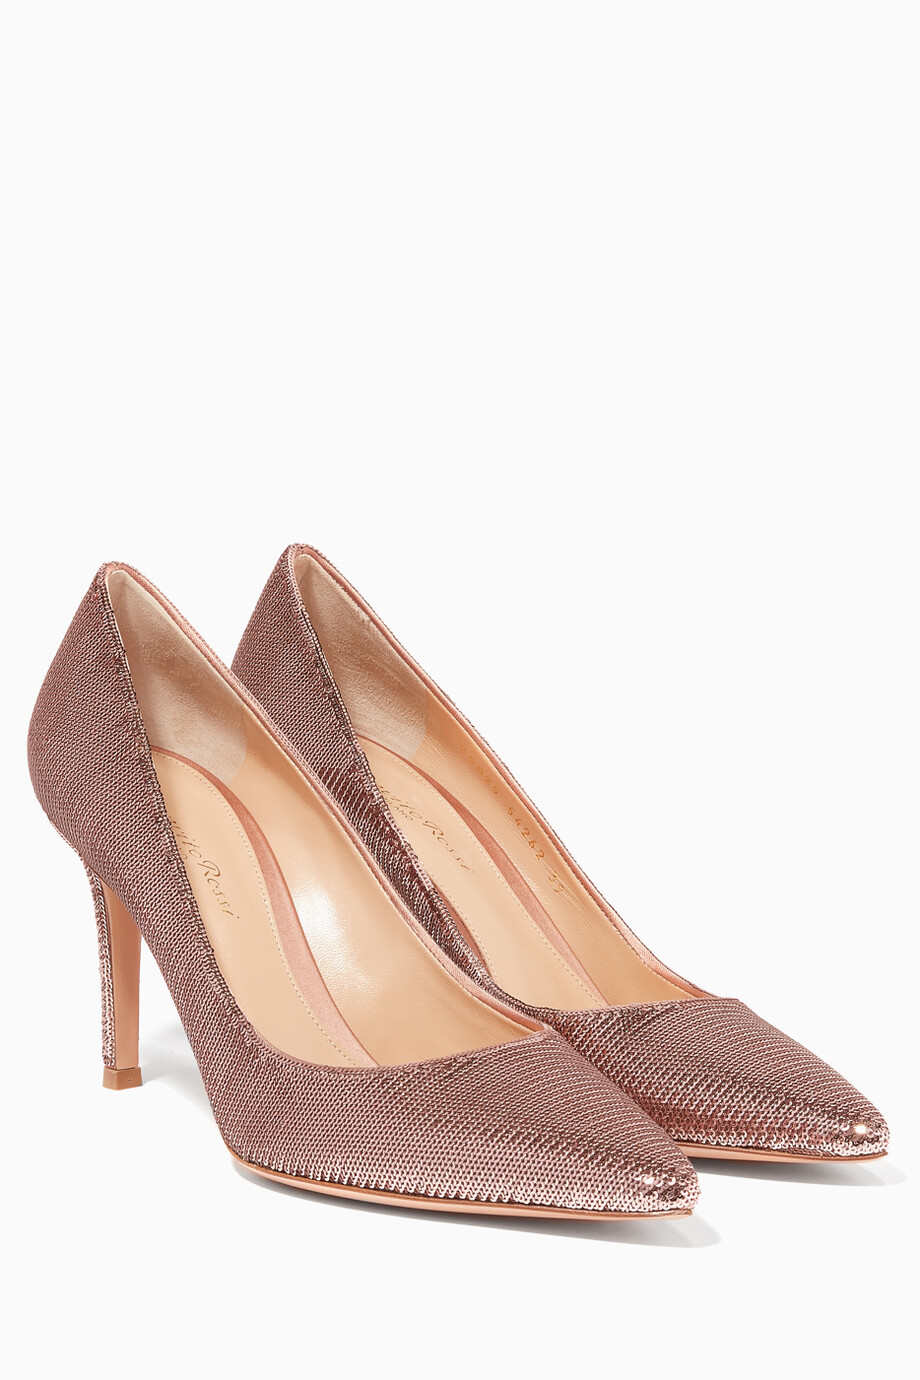 2706cd622 Shop Gianvito Rossi Neutral Pink Gianvito Sequin Pumps for Women ...